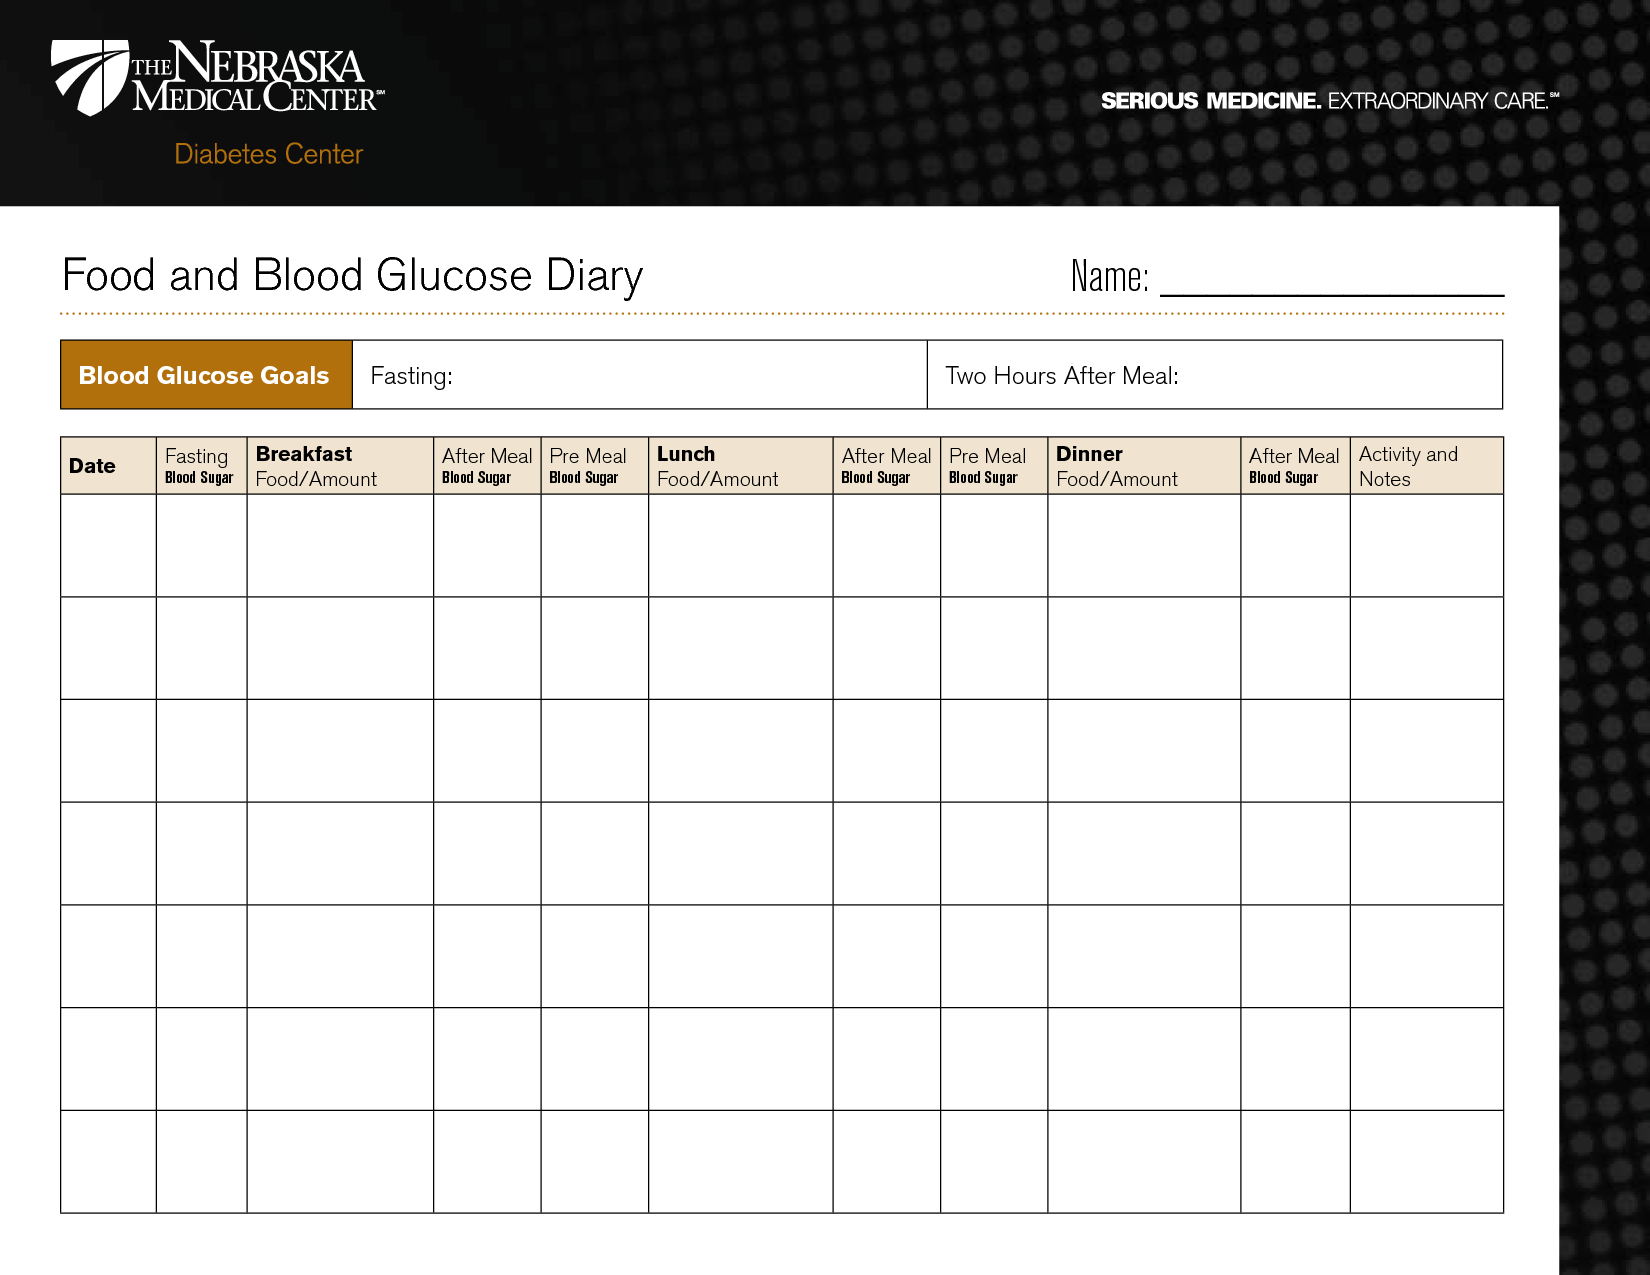 diabetic food diary template printable Food and Blood